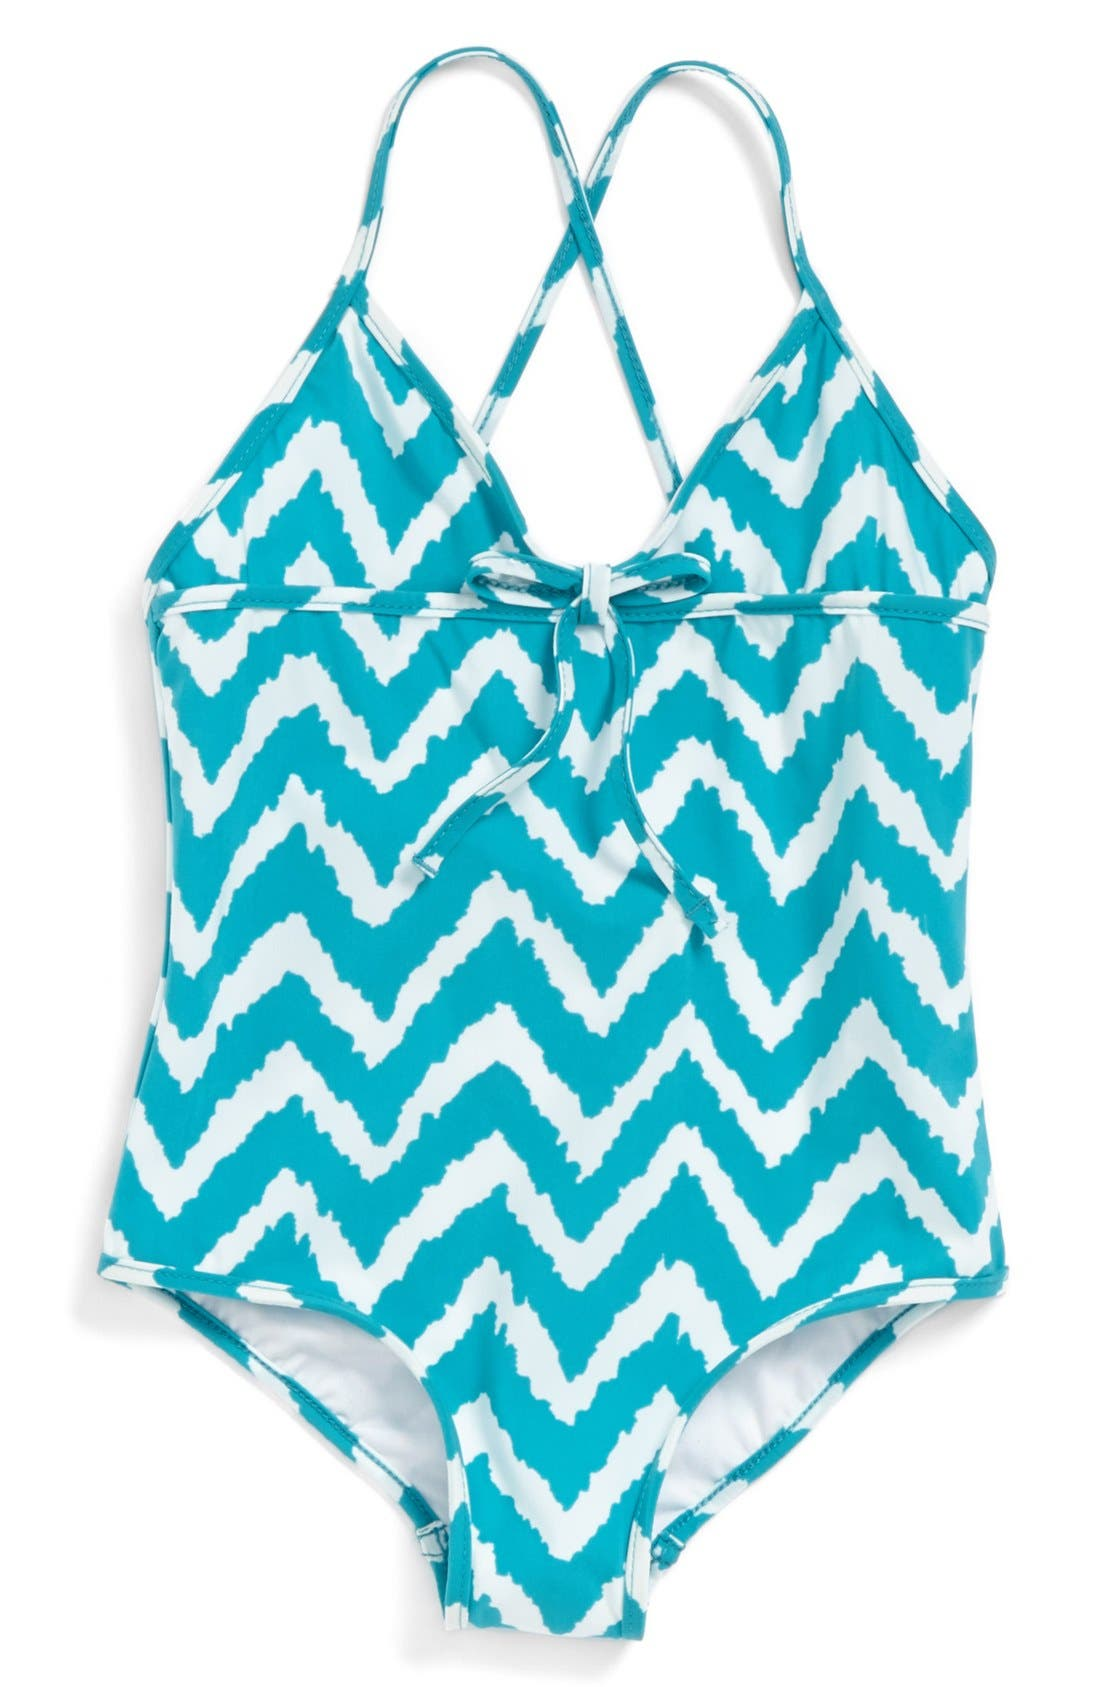 Alternate Image 1 Selected - Milly Minis Zigzag One-Piece Swimsuit (Toddler Girls, Little Girls & Big Girls)